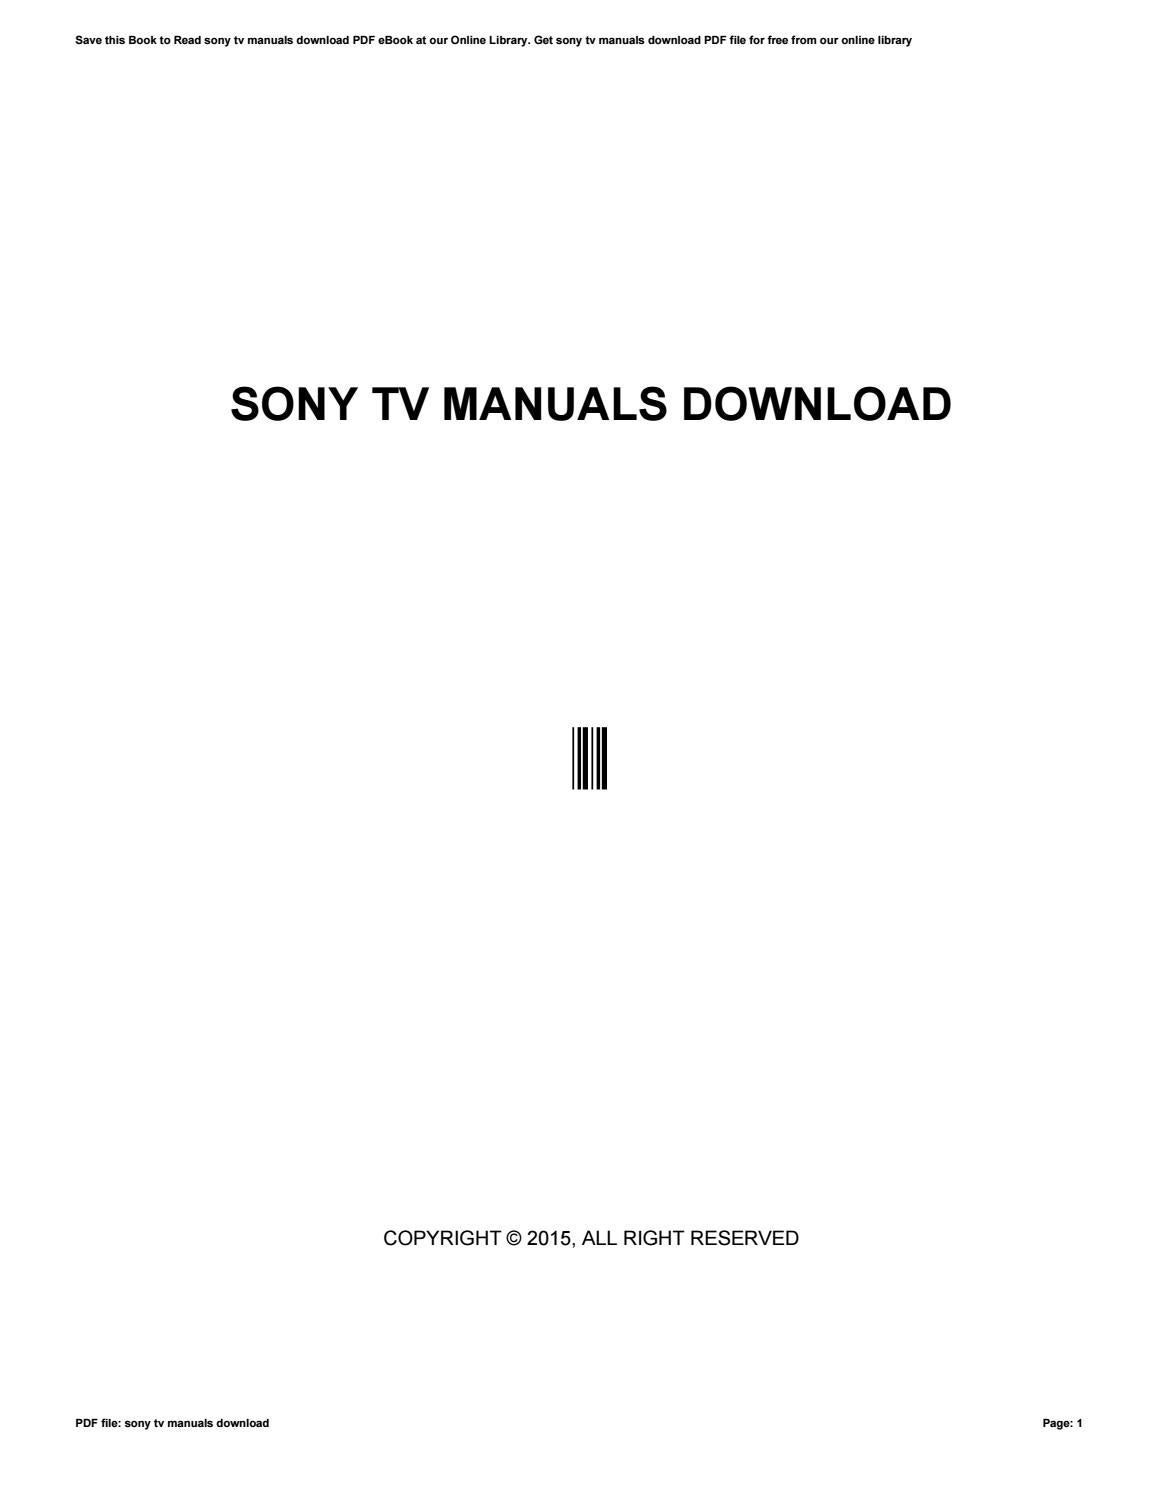 sony tv manuals download by dasmin89jsoiahj issuu rh issuu com Westinghouse TV Manual Sony TV Manual 2010